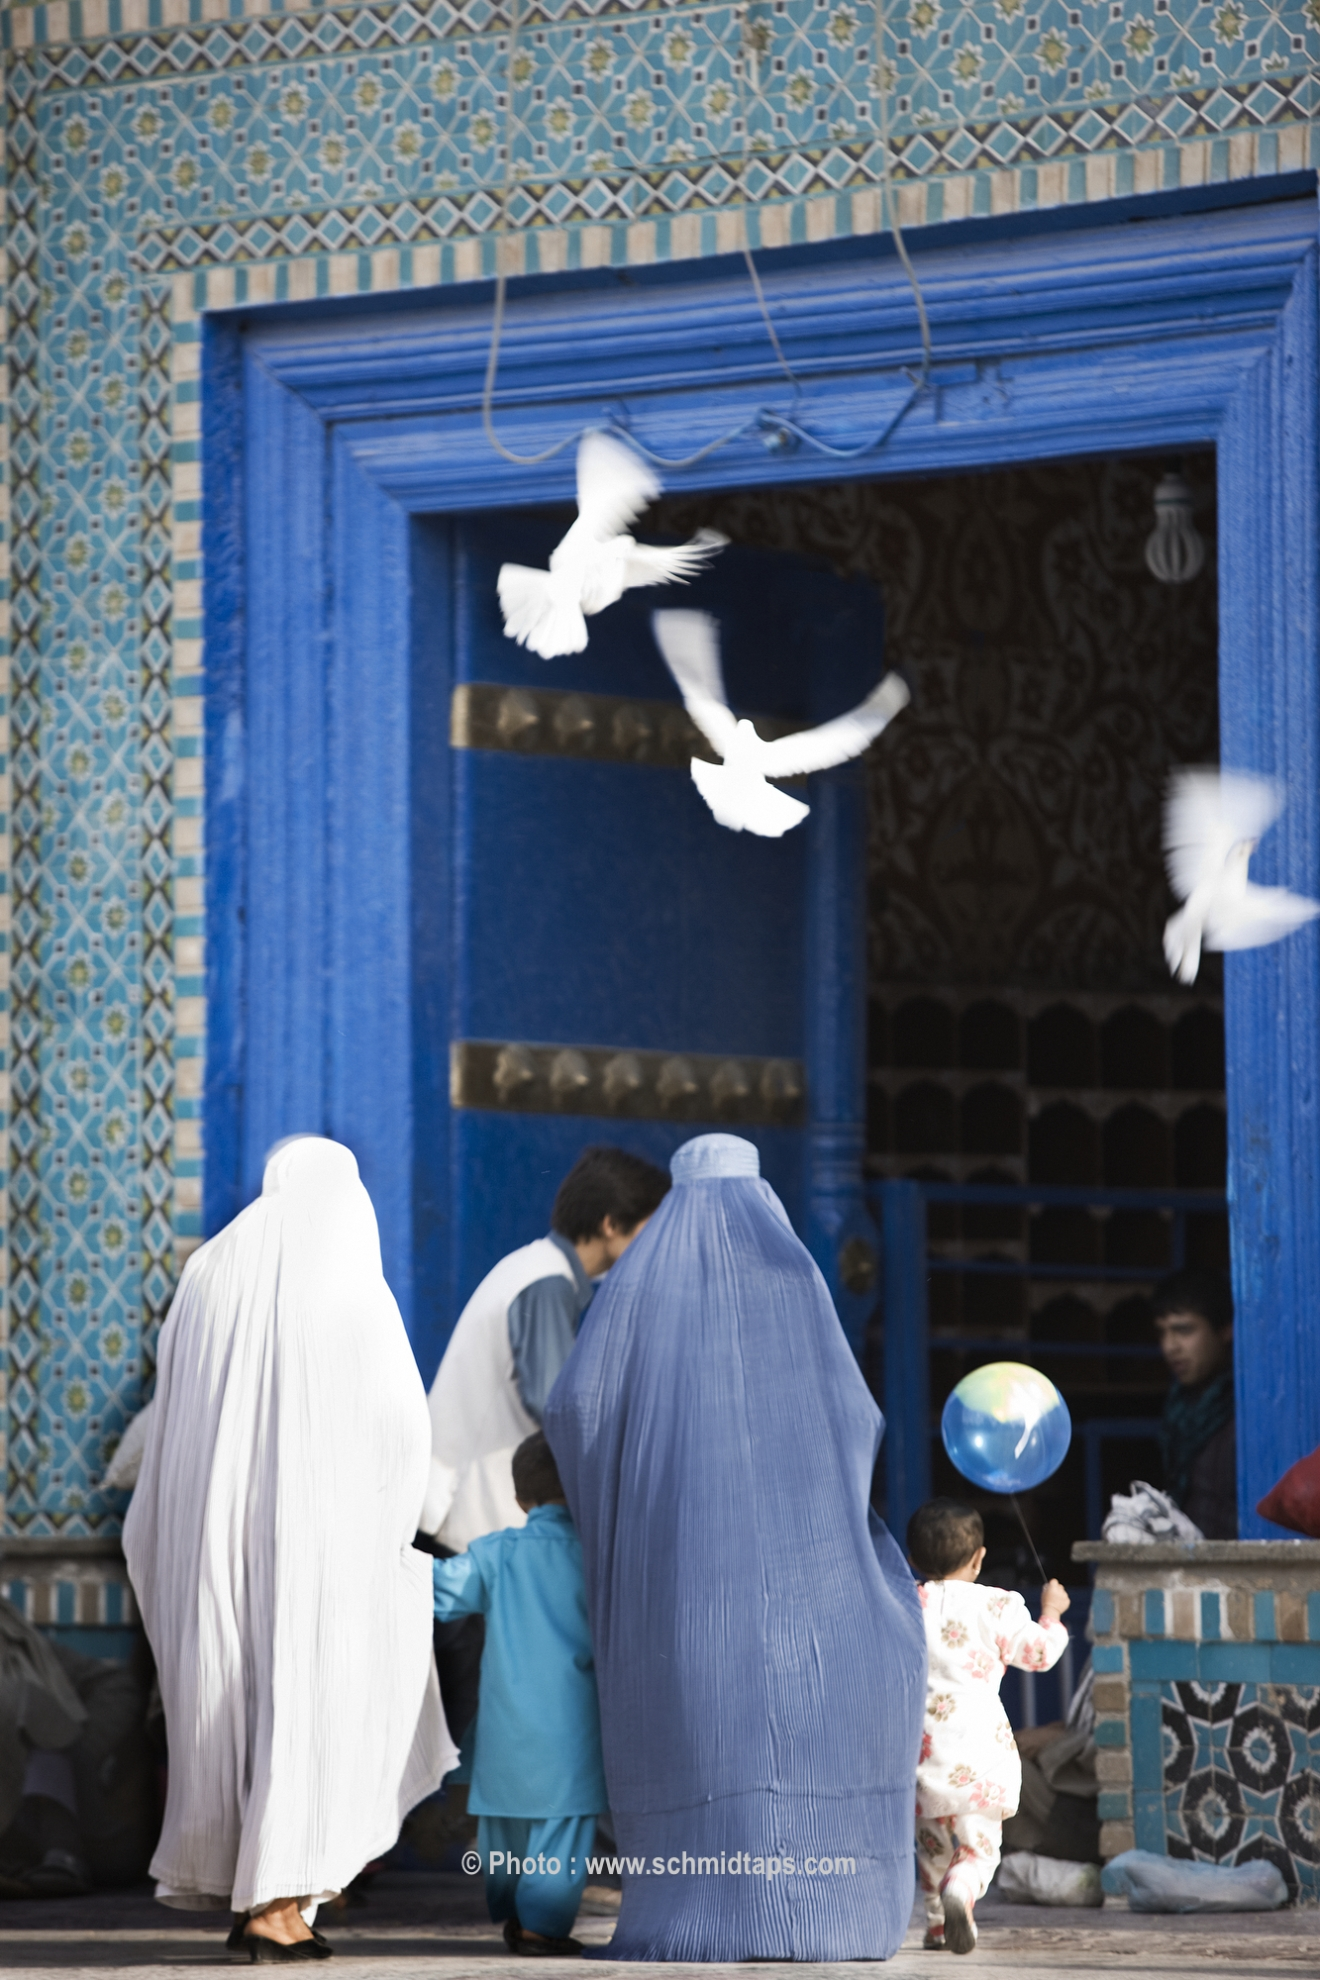 Women and children entering the Blue Mosque in Mazar-I-Sharif. Photo: Lars Schmidt, 2010-'13